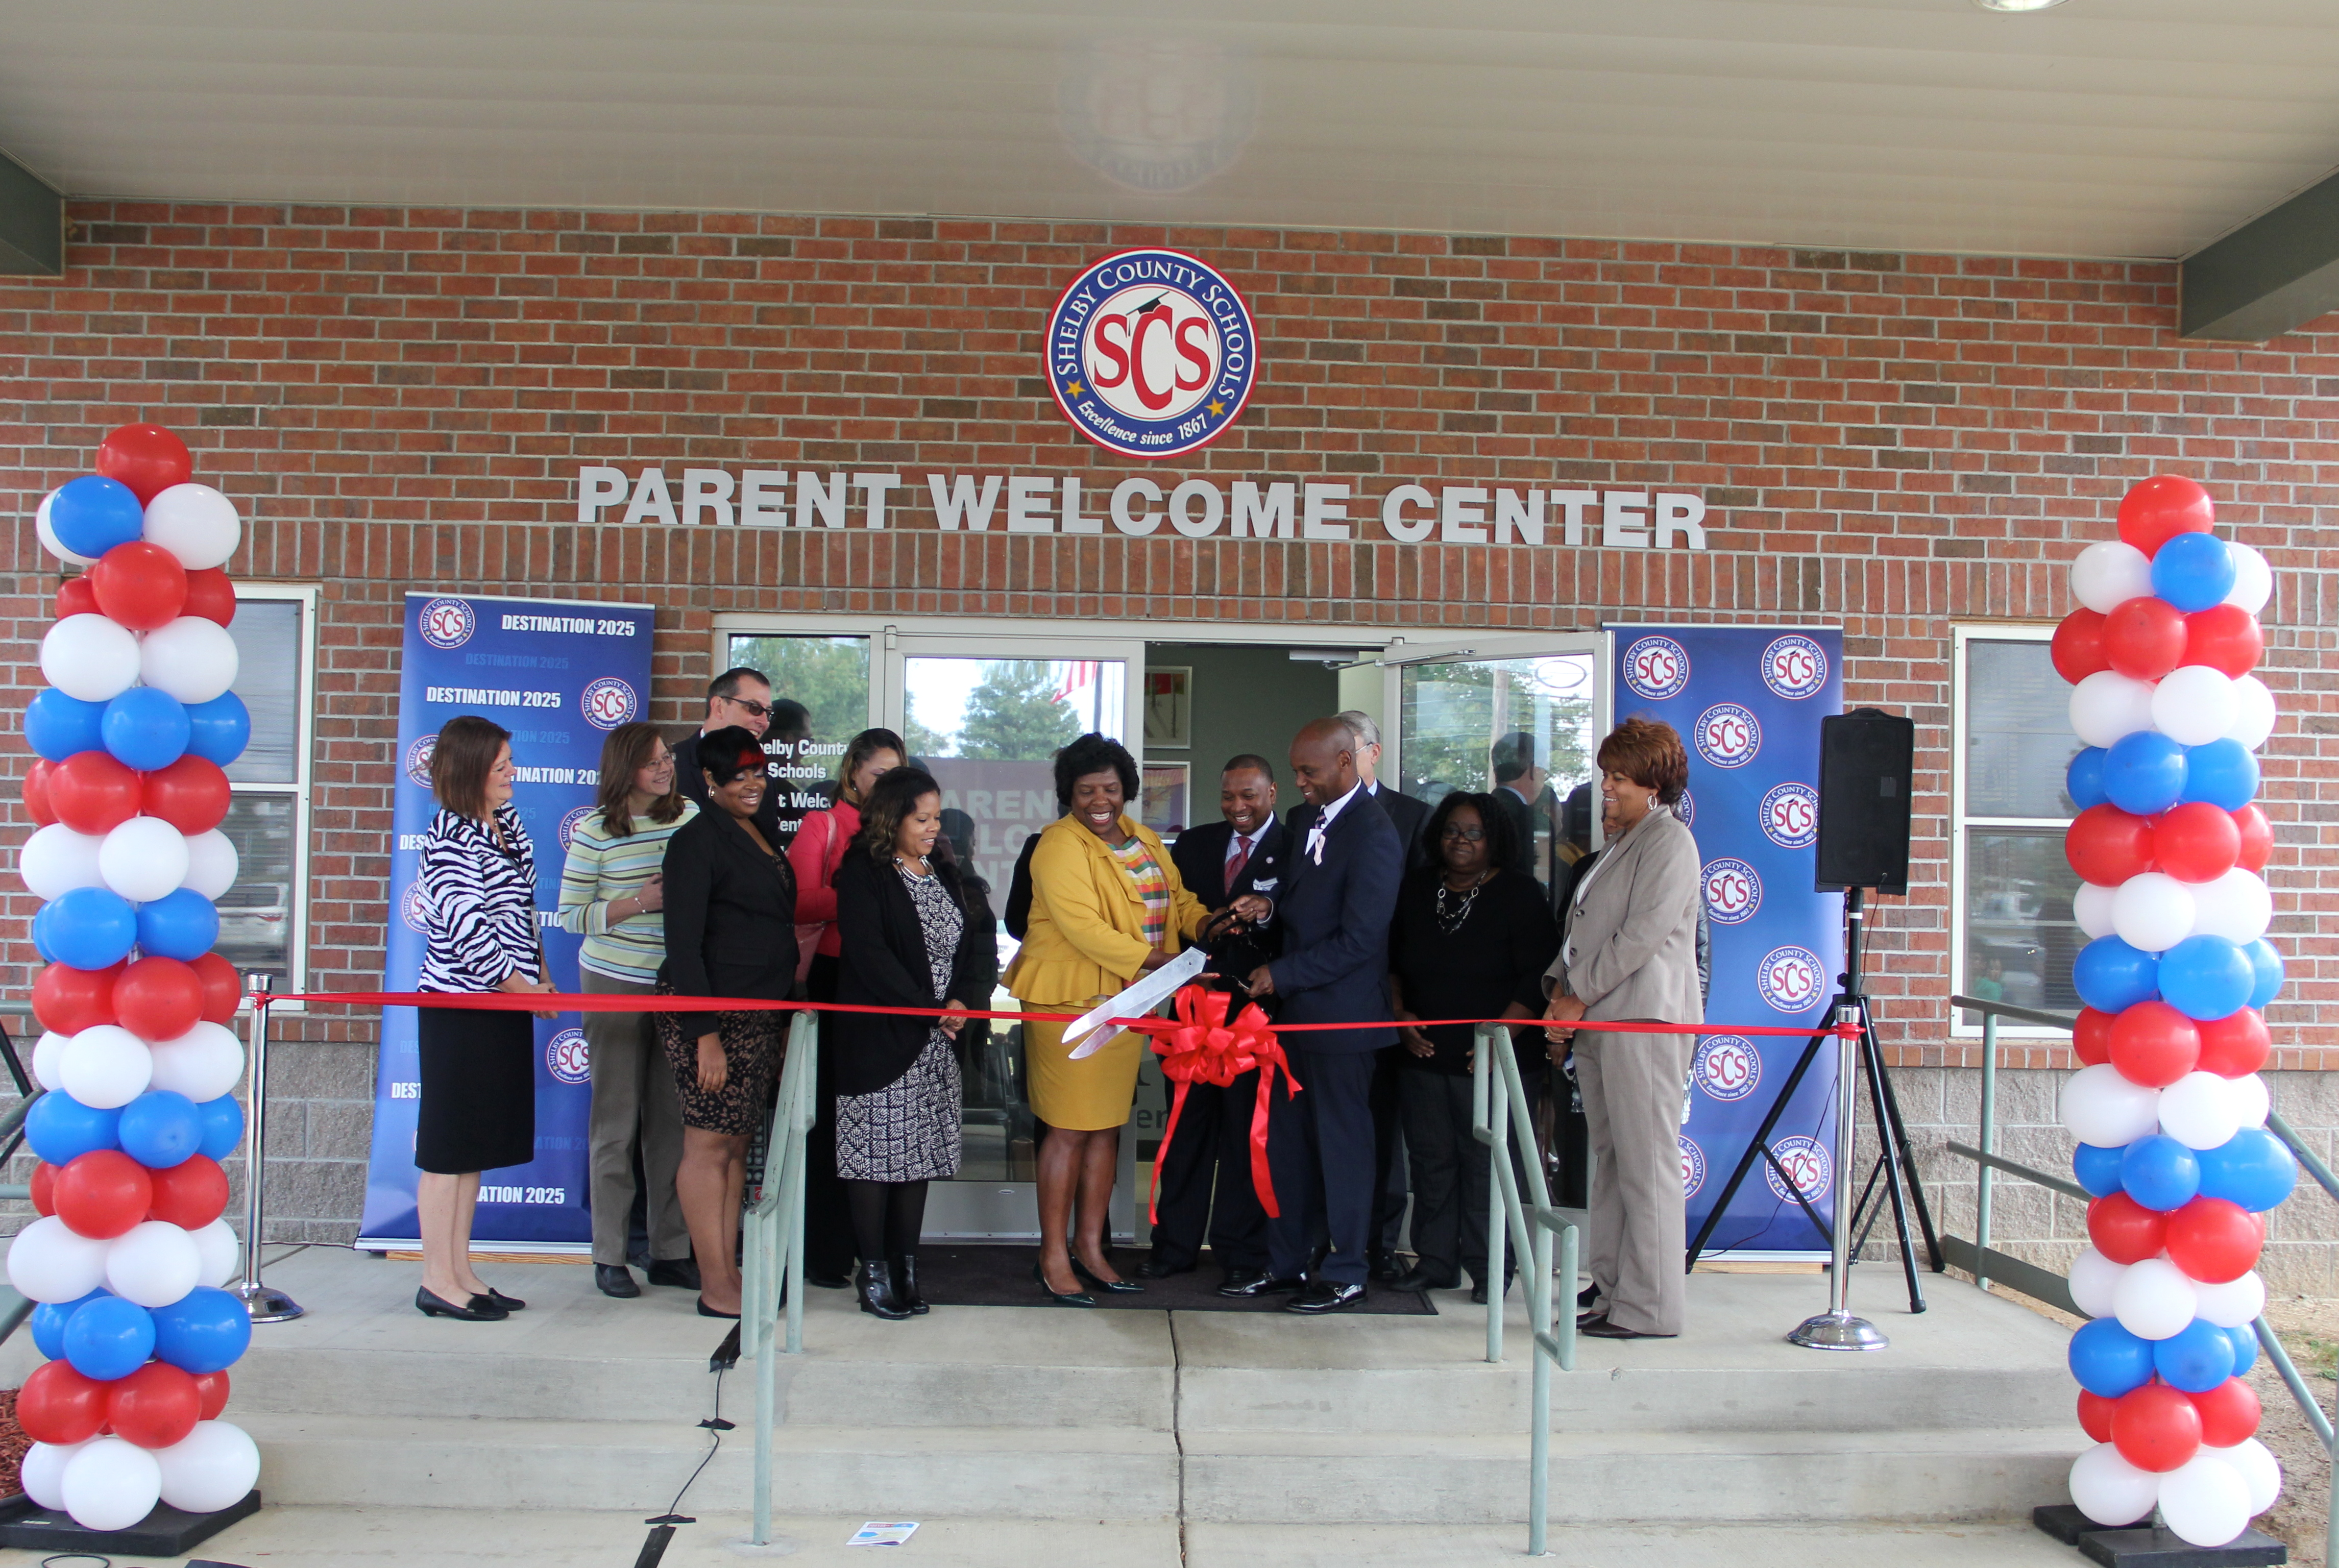 Surrounding by supporters, Superintendent Dorsey Hopson cuts the ribbon officially opening Shelby County Schools' new parent welcome center in Memphis.